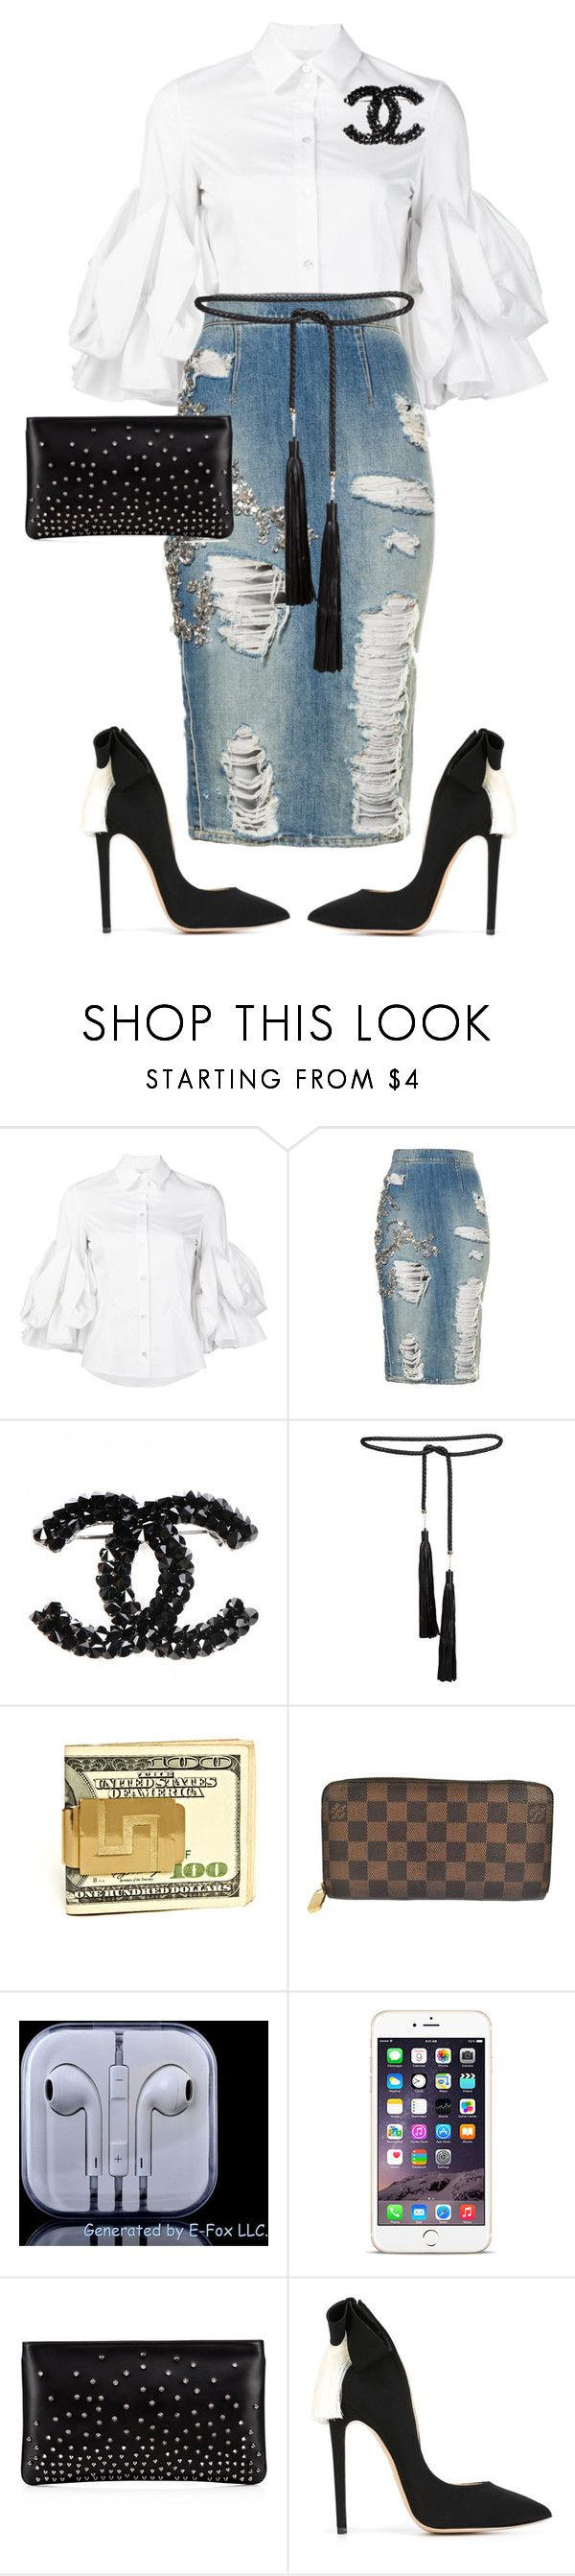 Youth Sunday!!! by cogic-fashion ❤ liked on Polyvore featuring Christian Siriano, Rosetta Getty, Louis Vuitton, Christian Louboutin and Aleksander Siradekian